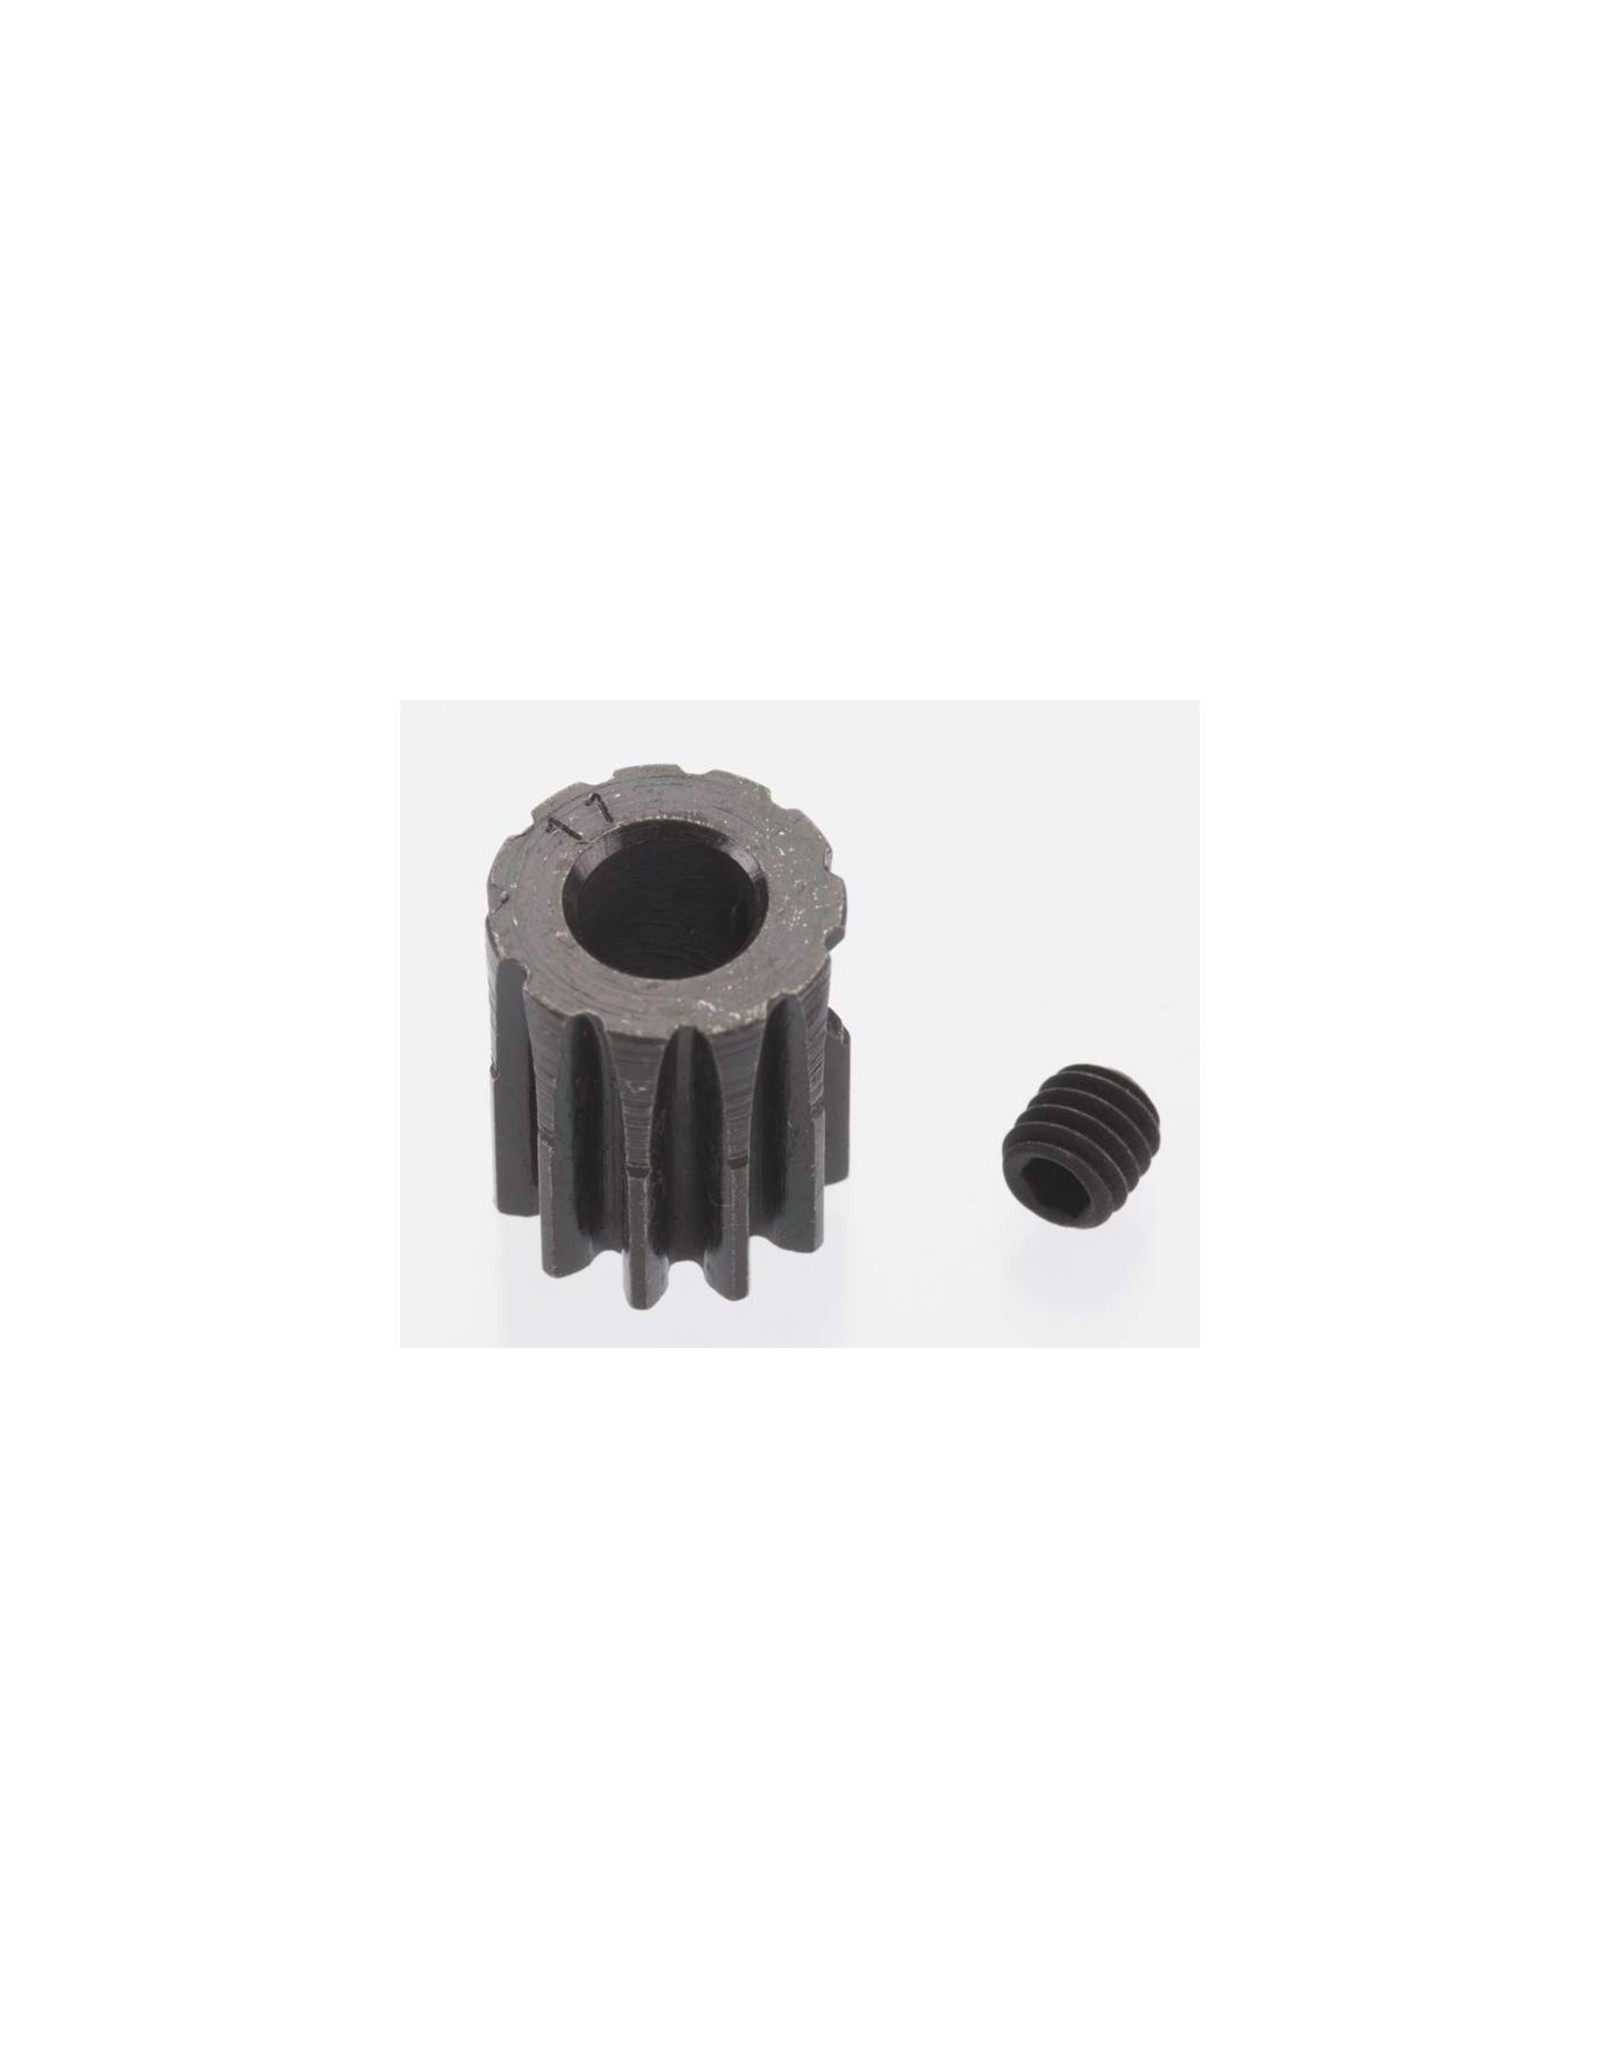 Robinson Racing Products (RRP) Extra Hard 11 Tooth Blackened Steel 32p Pinion 5mm (RRP8611)